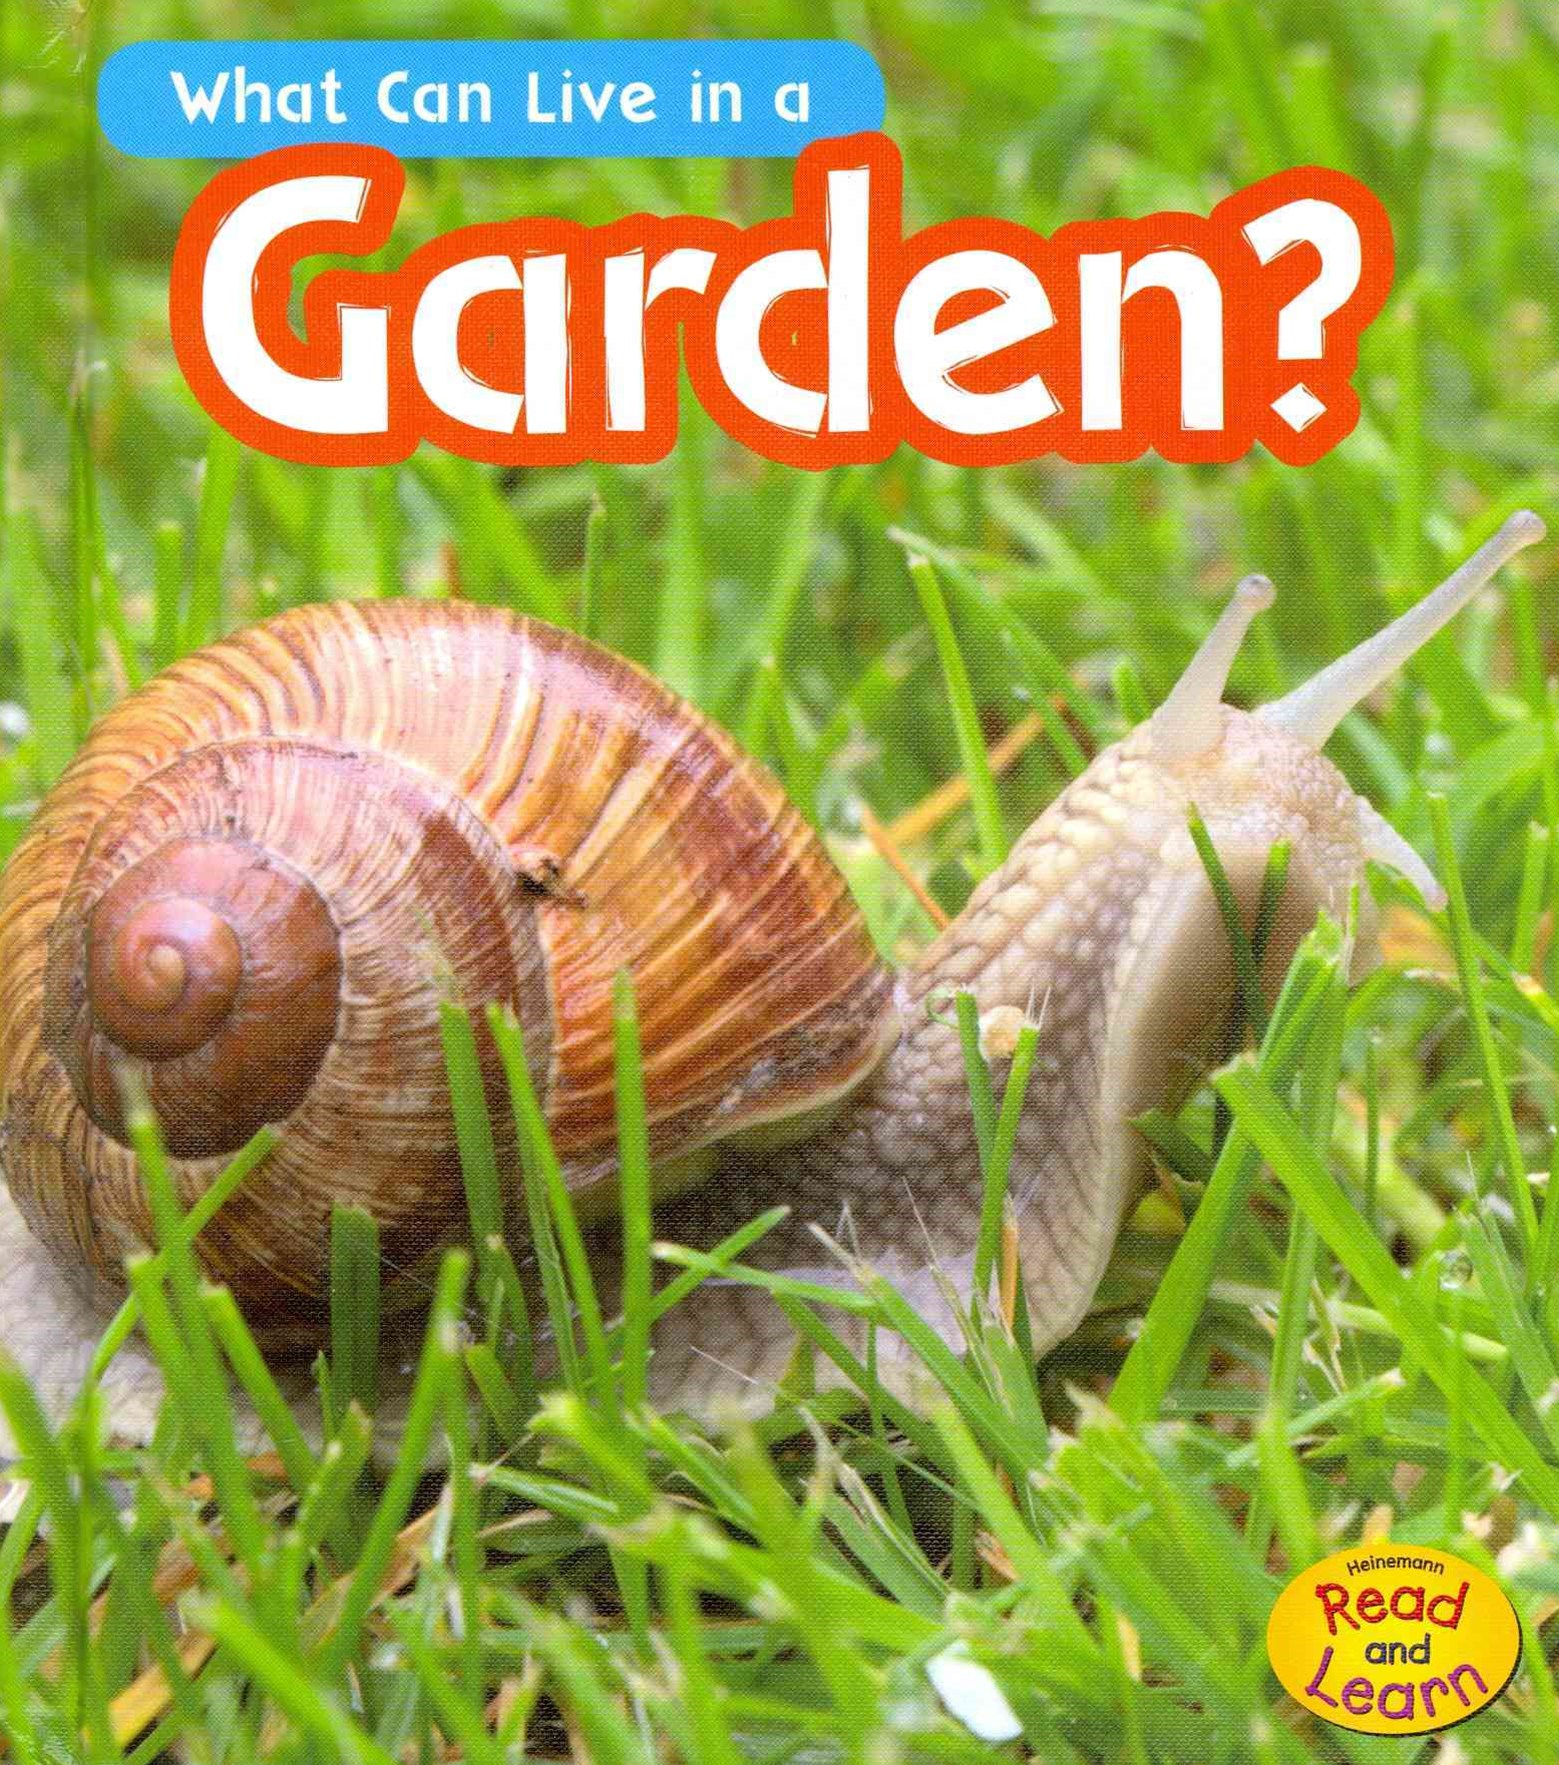 What Can Live in the Garden?